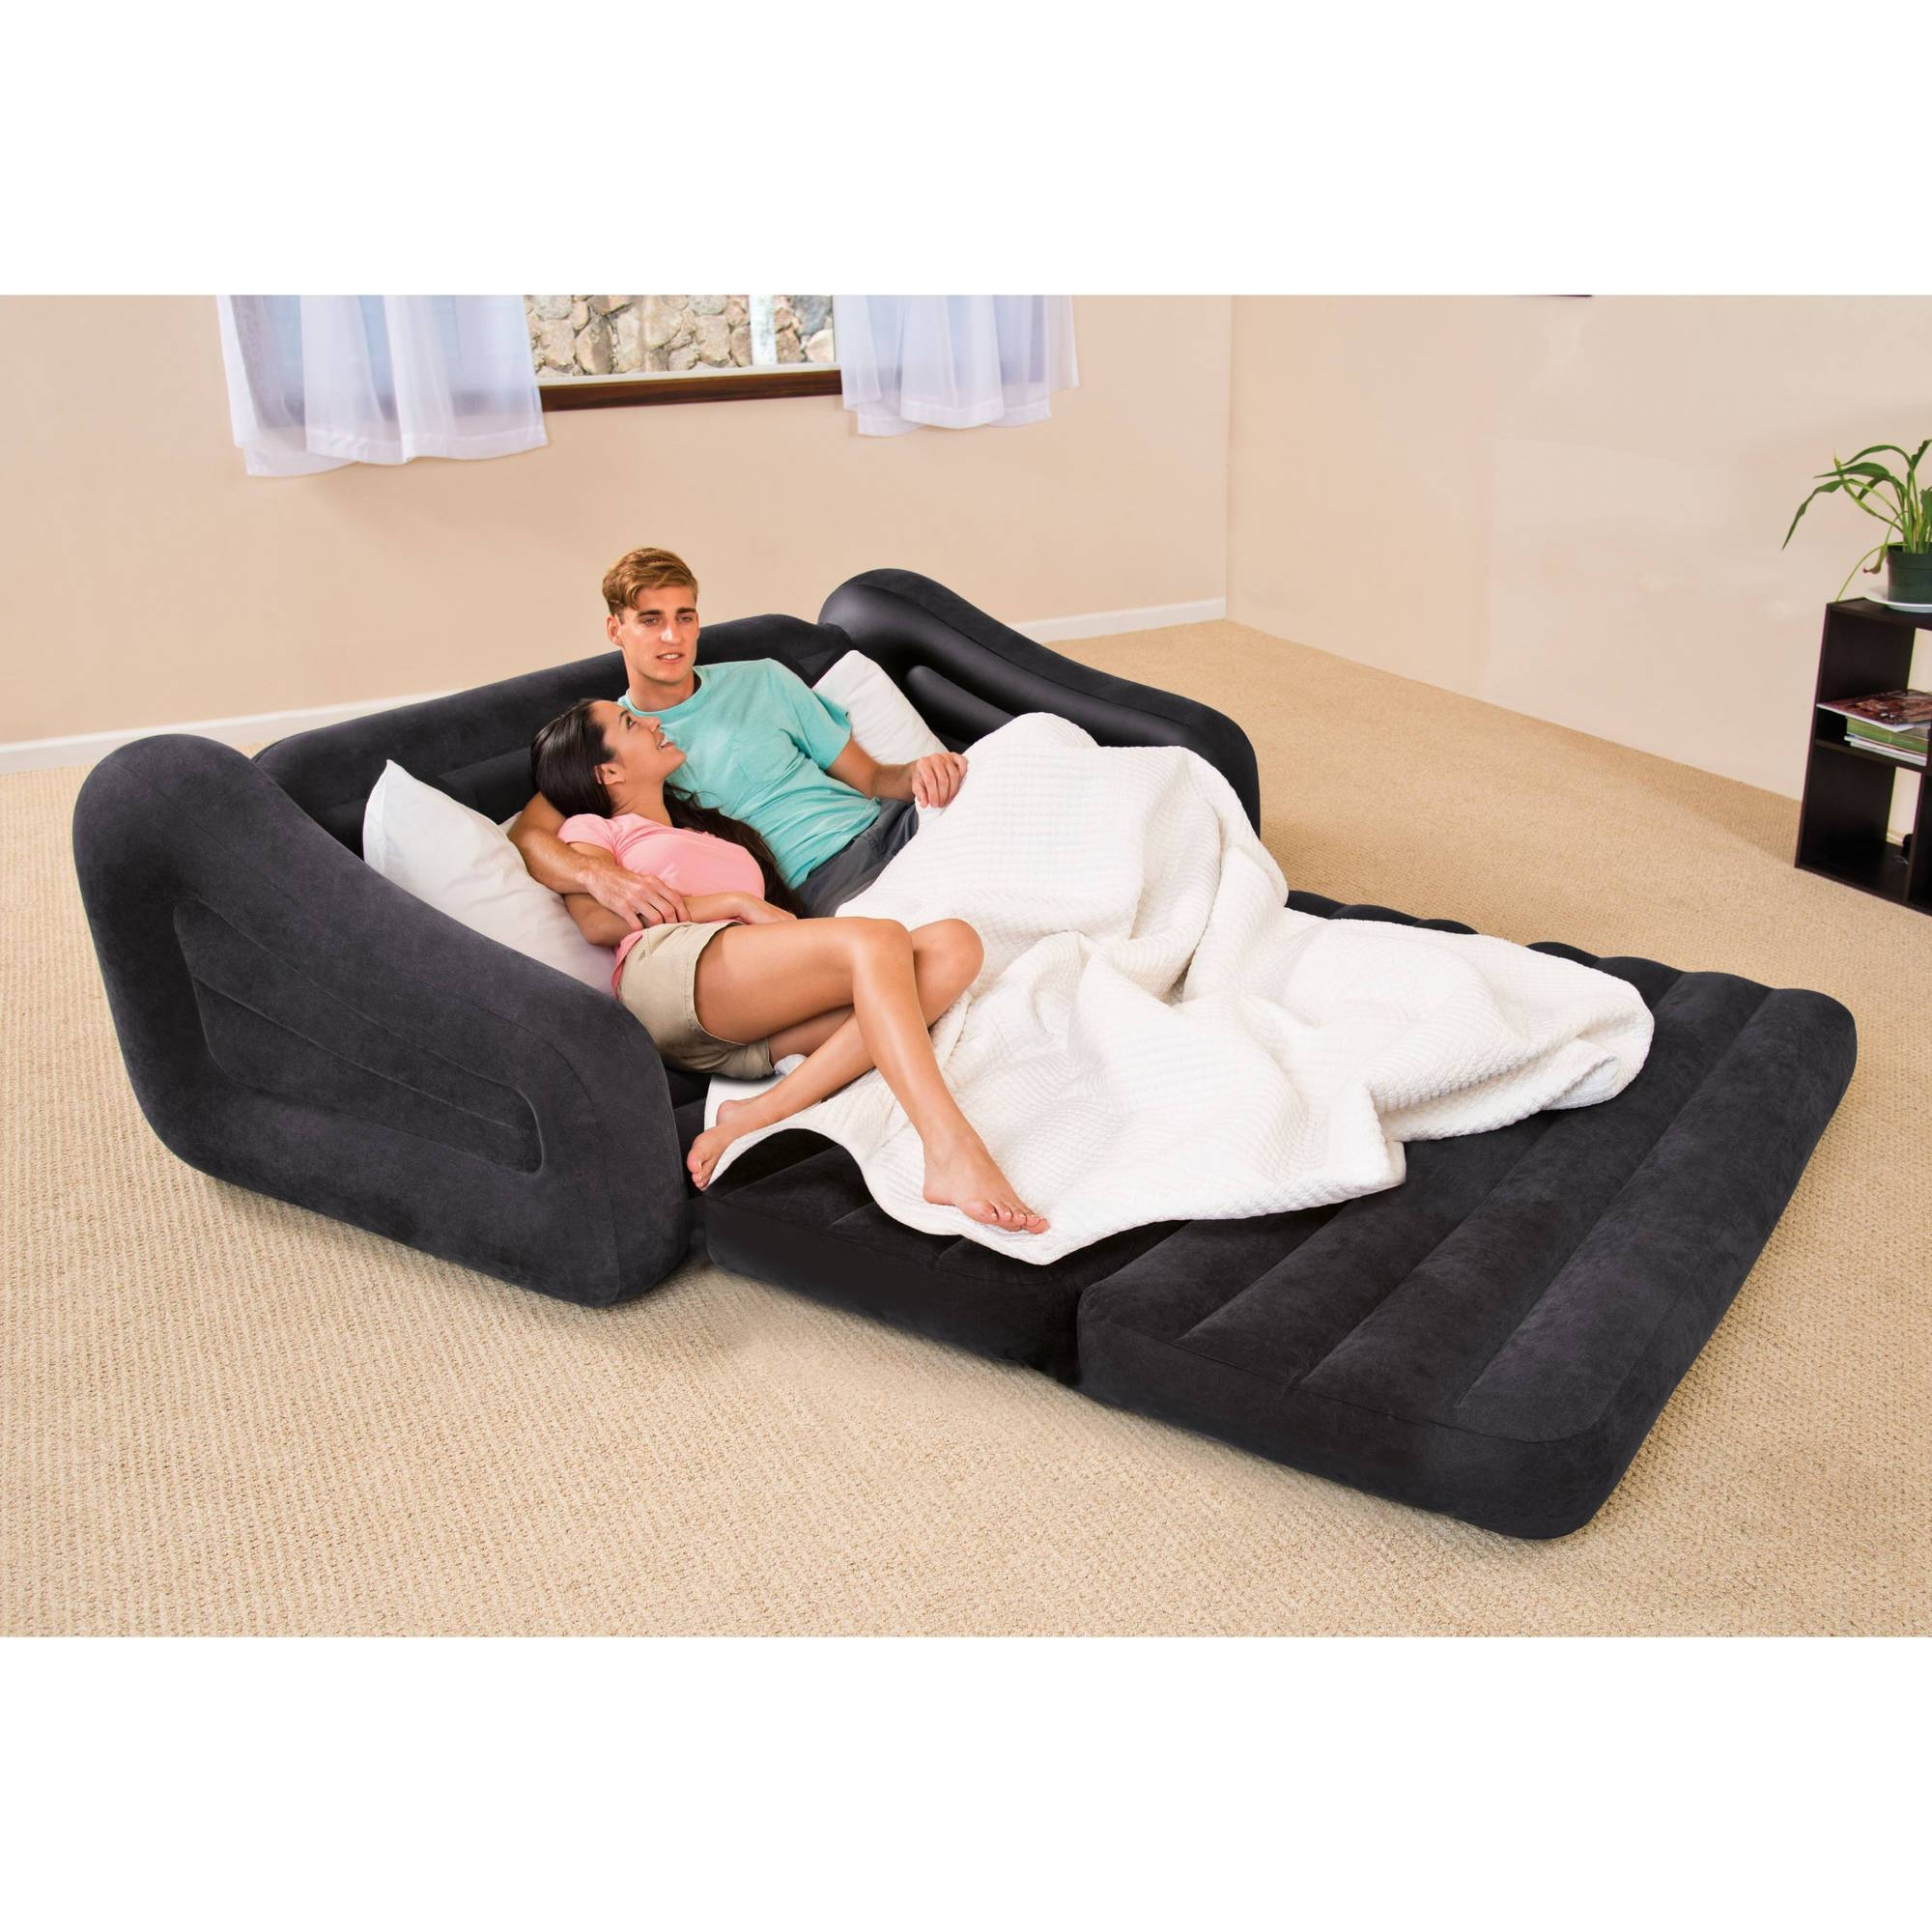 Kids Flip Out Sofa Beds - Leather Sectional Sofa inside Flip Out Sofa Bed Toddlers (Image 12 of 30)